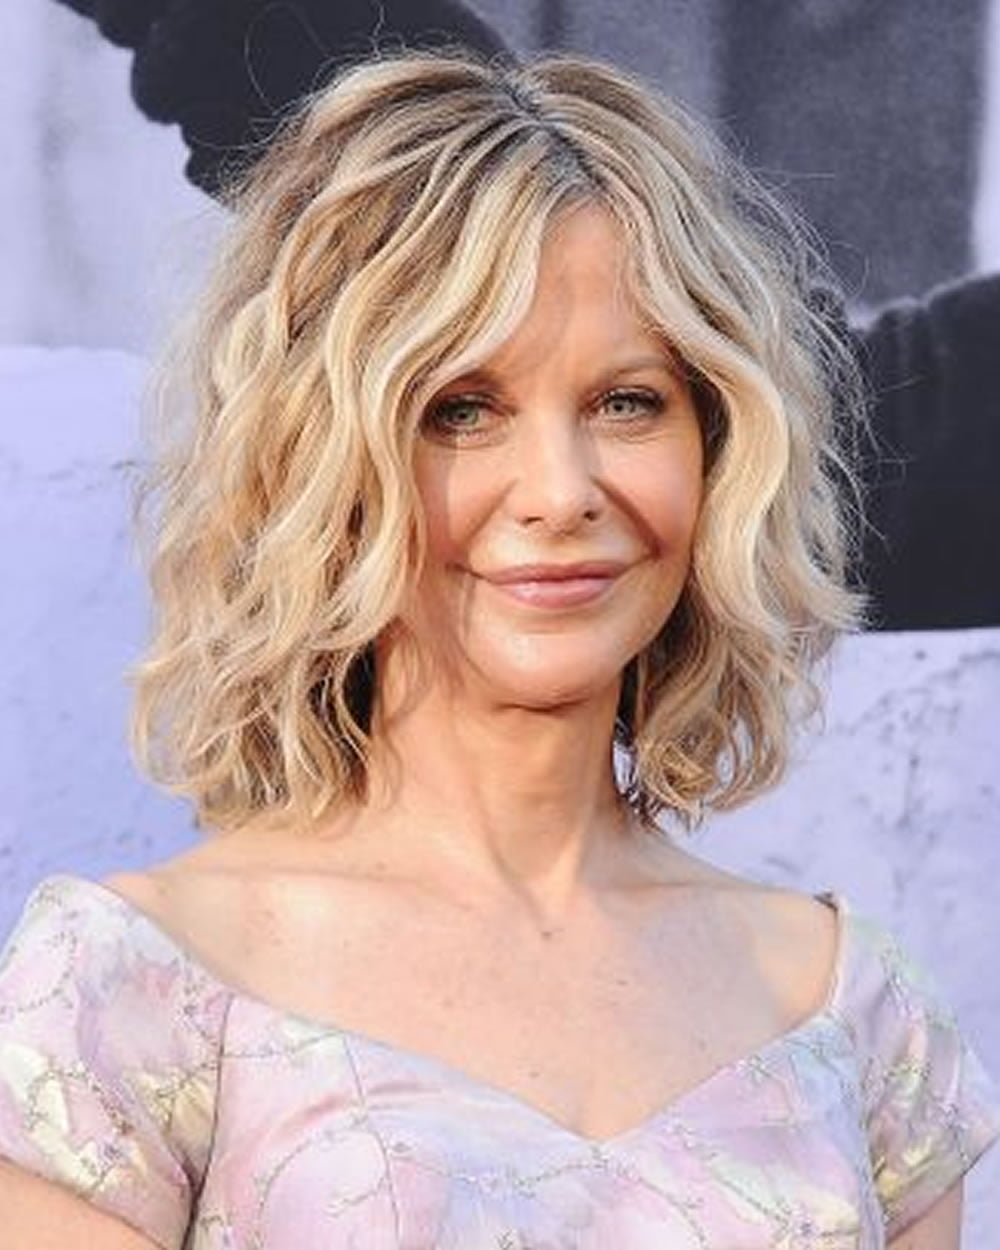 Hairstyles For Older Women Over 50 To 60 In 2019 Page 3